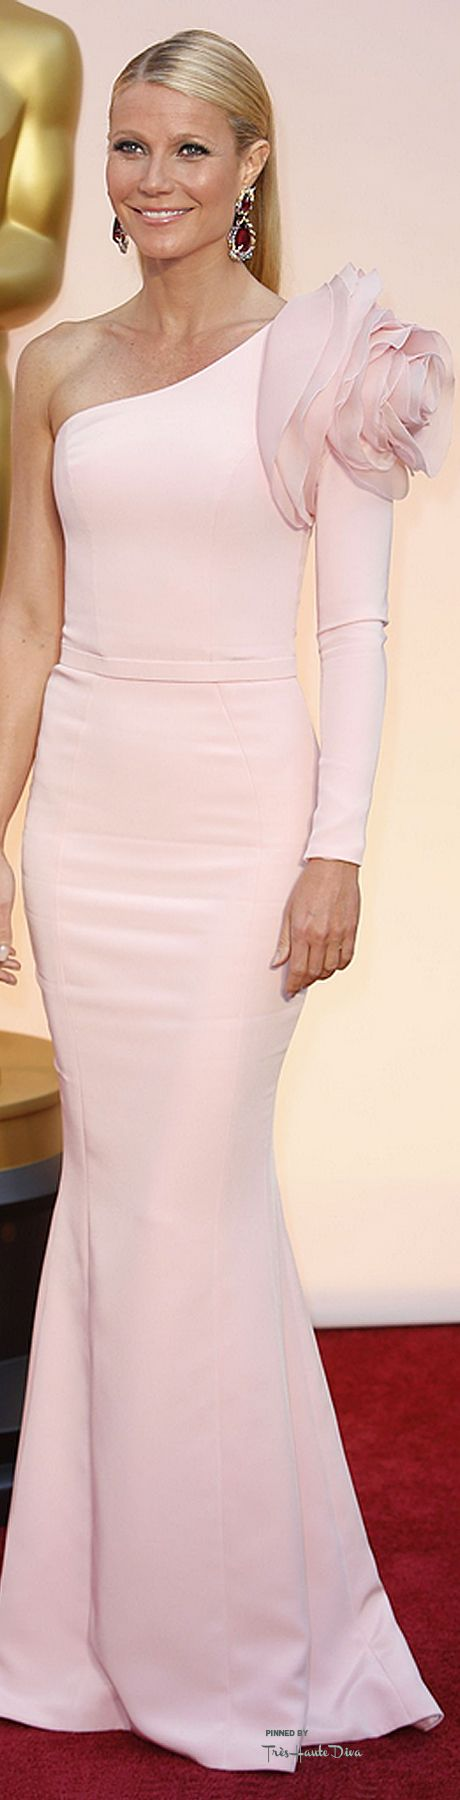 "#Oscars 2015 Gwyneth Paltrow in Ralph & Russo Never saw Gweynth look more radiant! Gorgeous dress! The ""yards of pink"" worked well for her!"